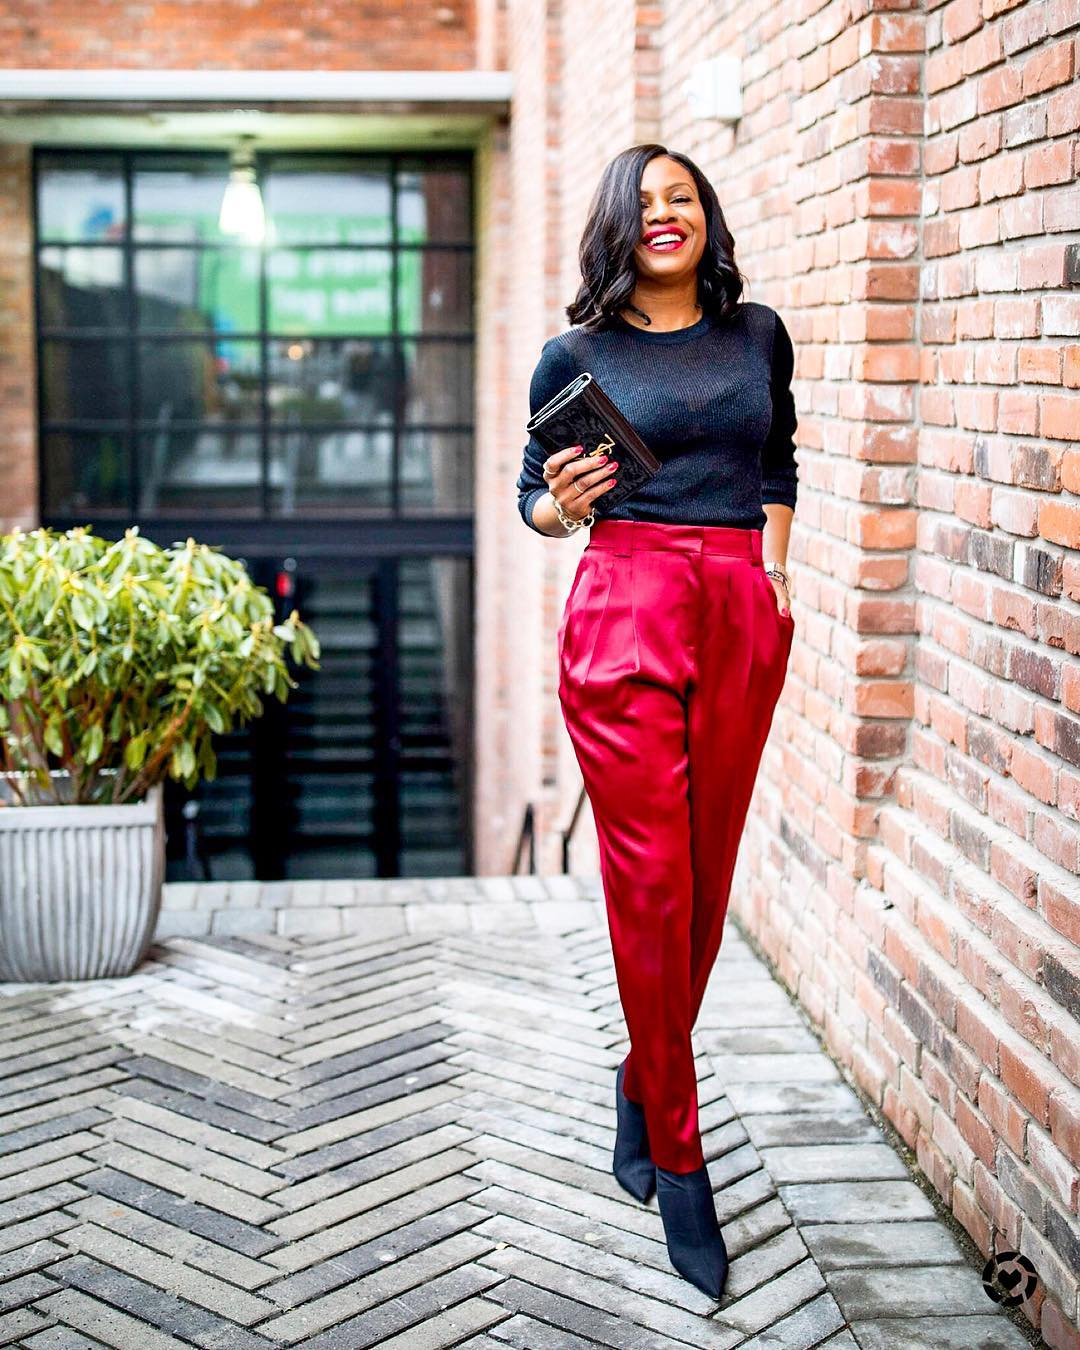 rave-worthy-ways-to-rock-red-black-and-red-outfits